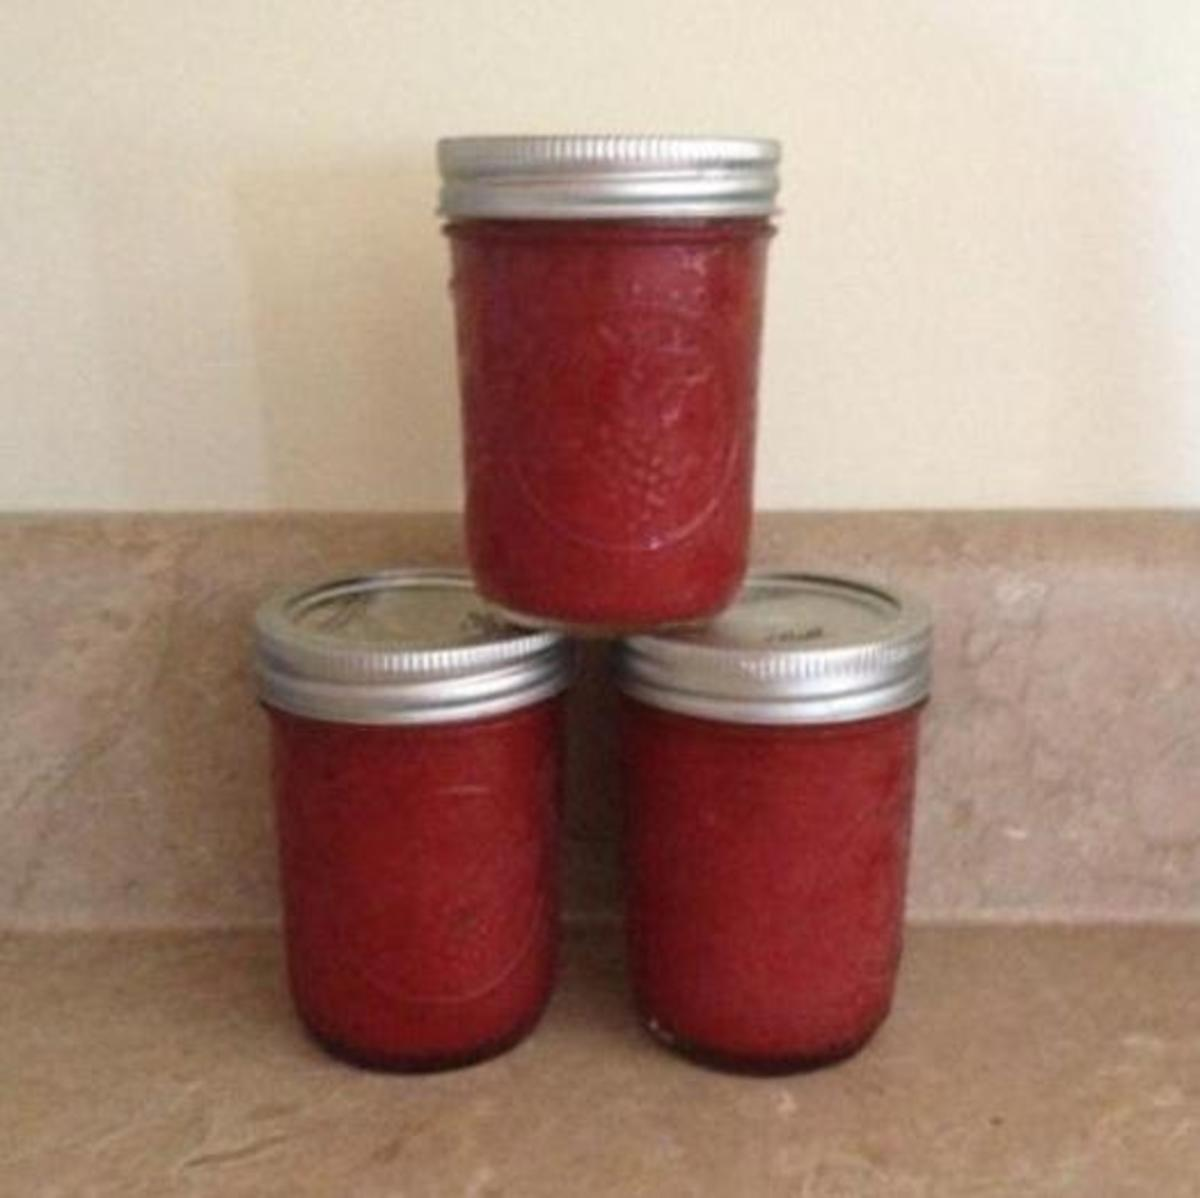 This is all I have left of the jam I made this summer.